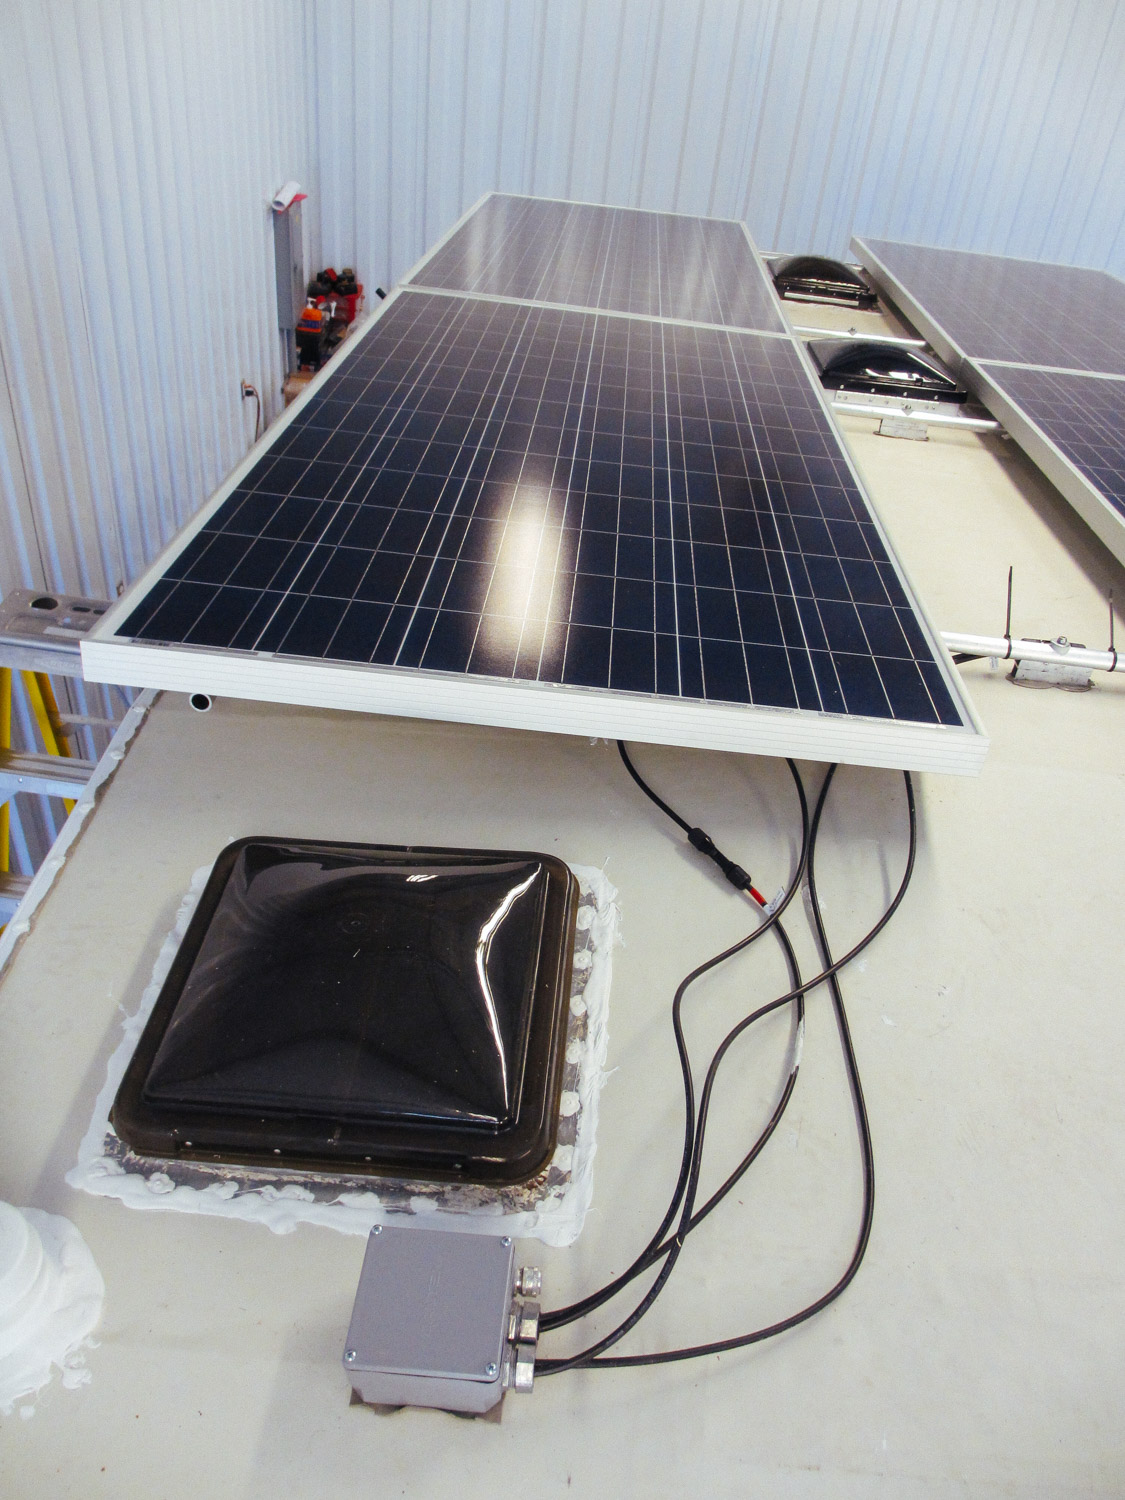 Solar panel leads going through the roof.